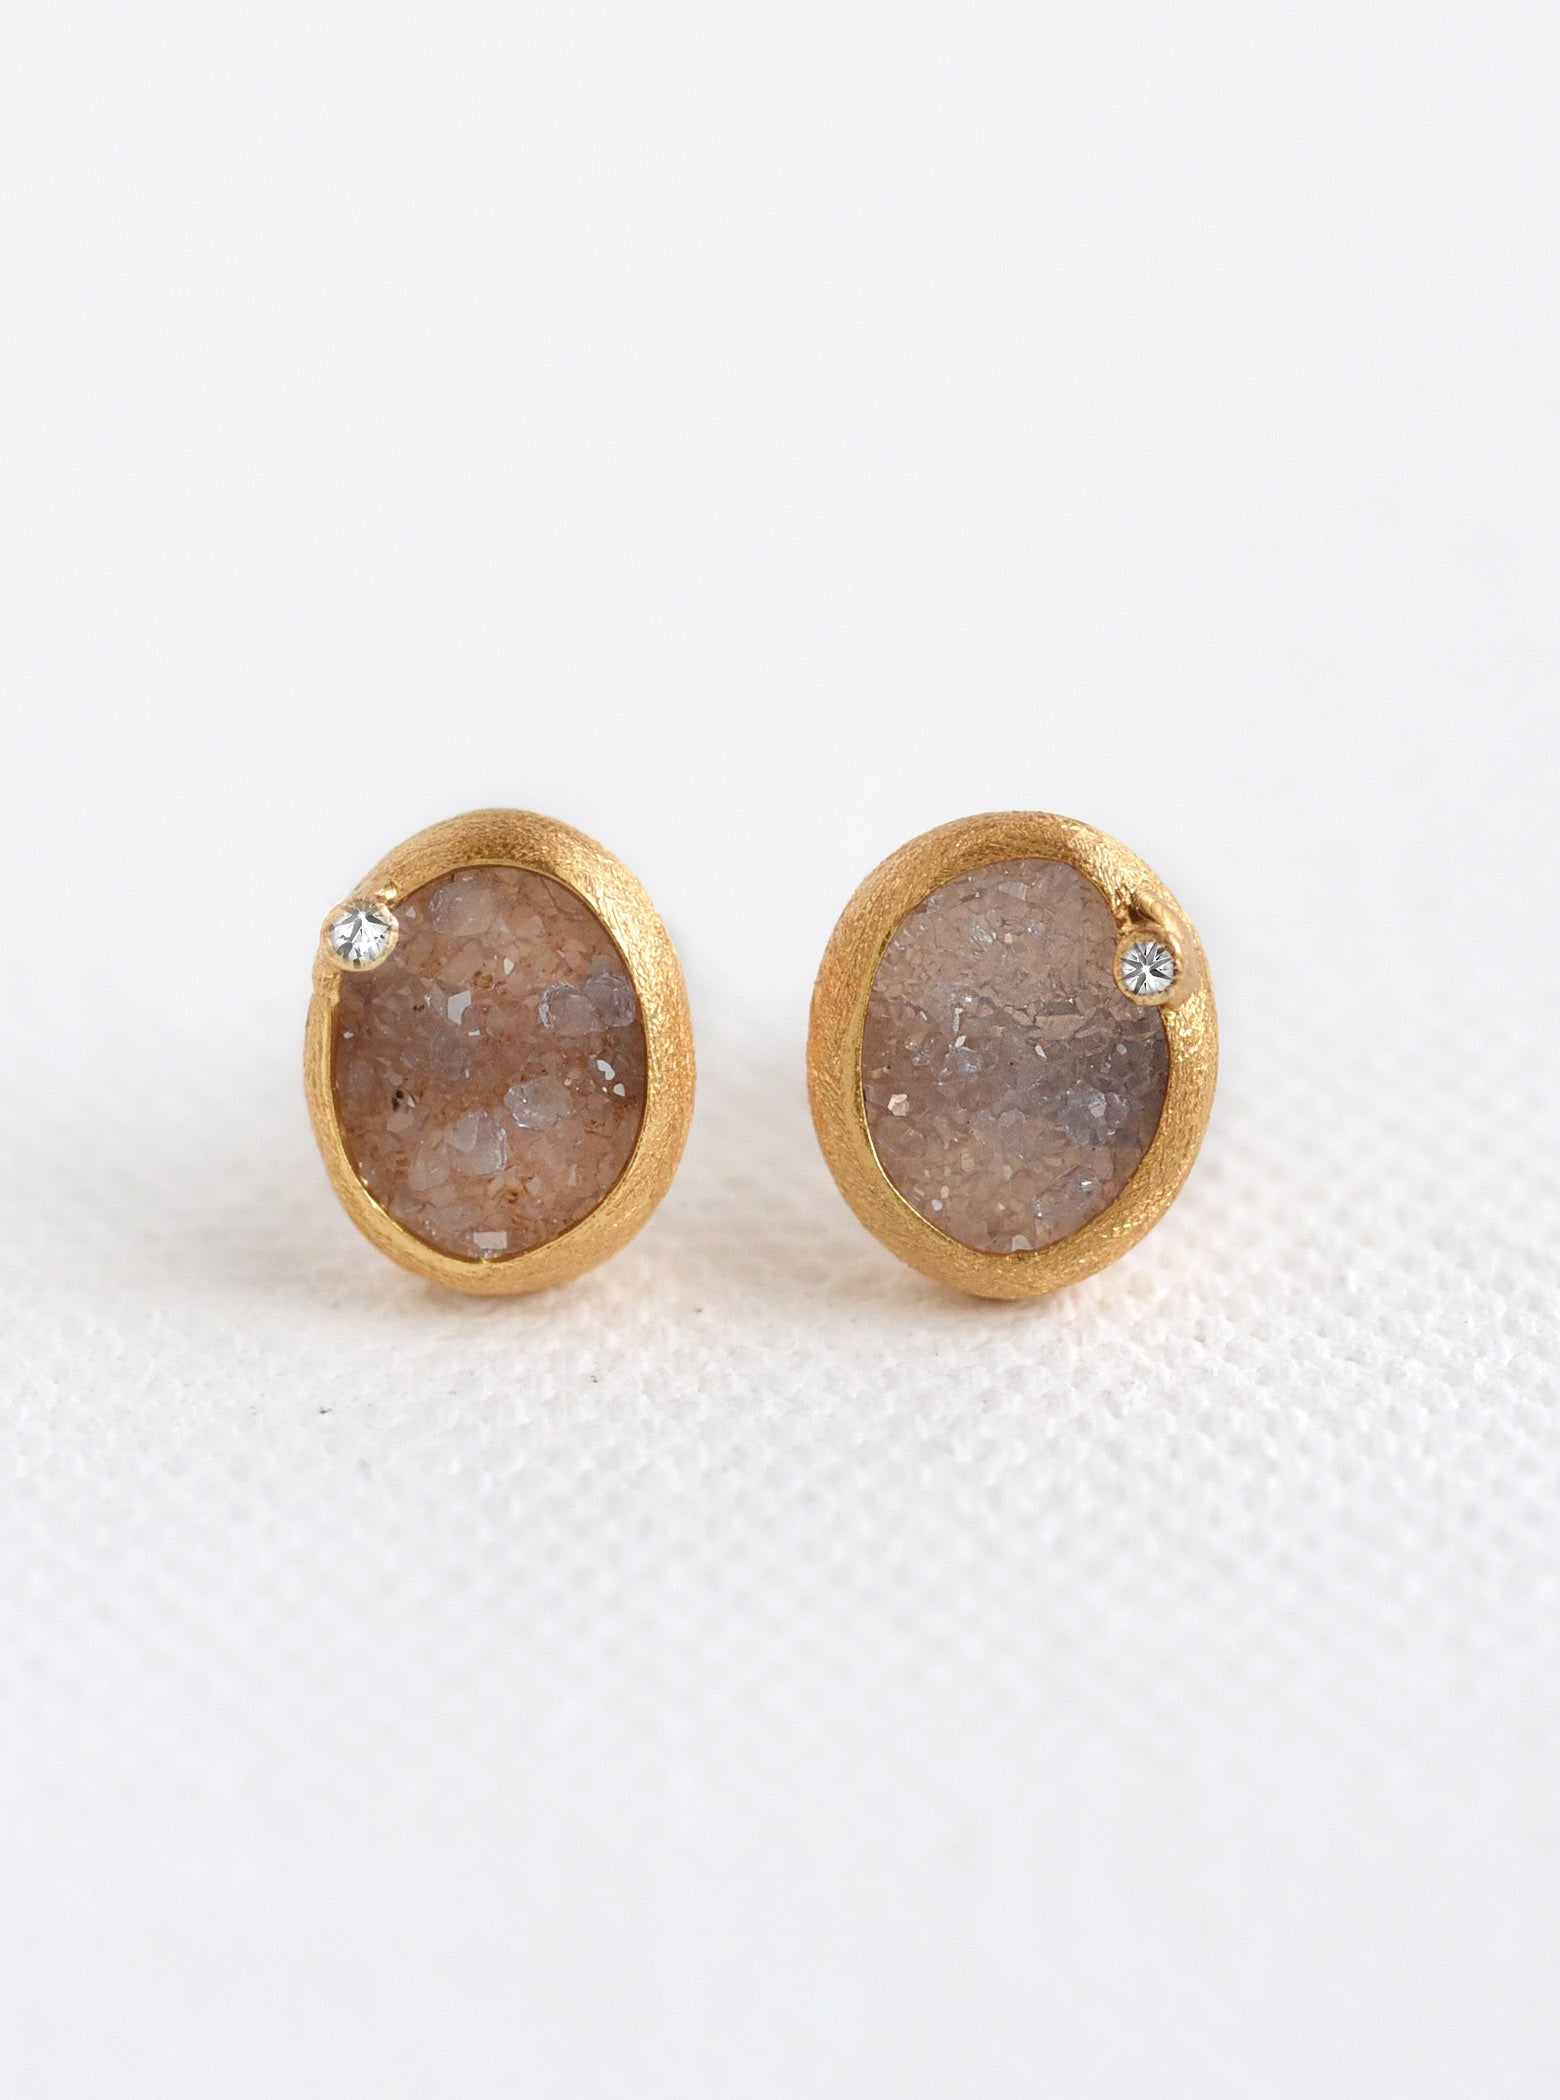 Oval Druzy With Genuine Diamond Earring*